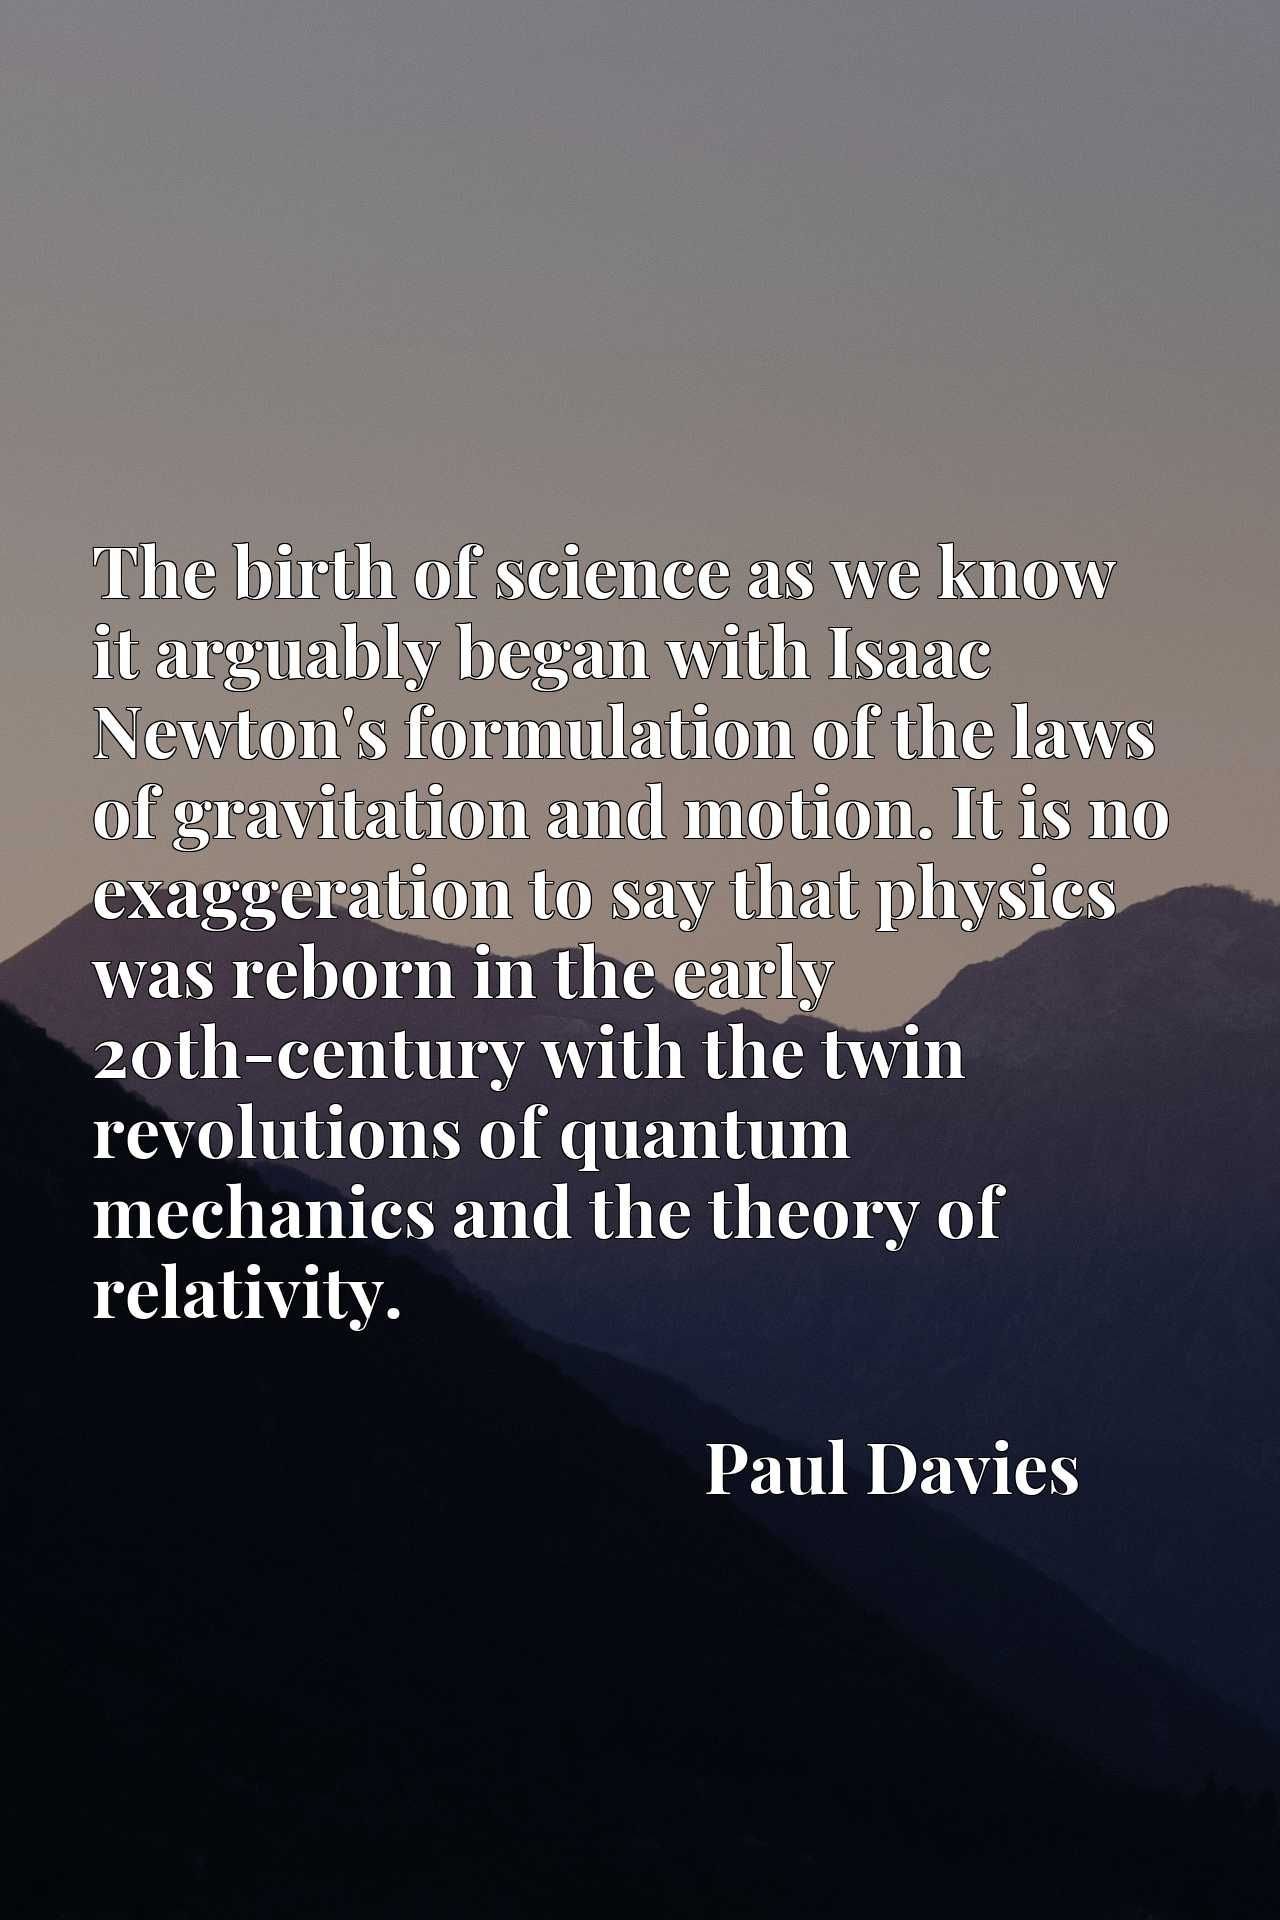 The birth of science as we know it arguably began with Isaac Newton's formulation of the laws of gravitation and motion. It is no exaggeration to say that physics was reborn in the early 20th-century with the twin revolutions of quantum mechanics and the theory of relativity.